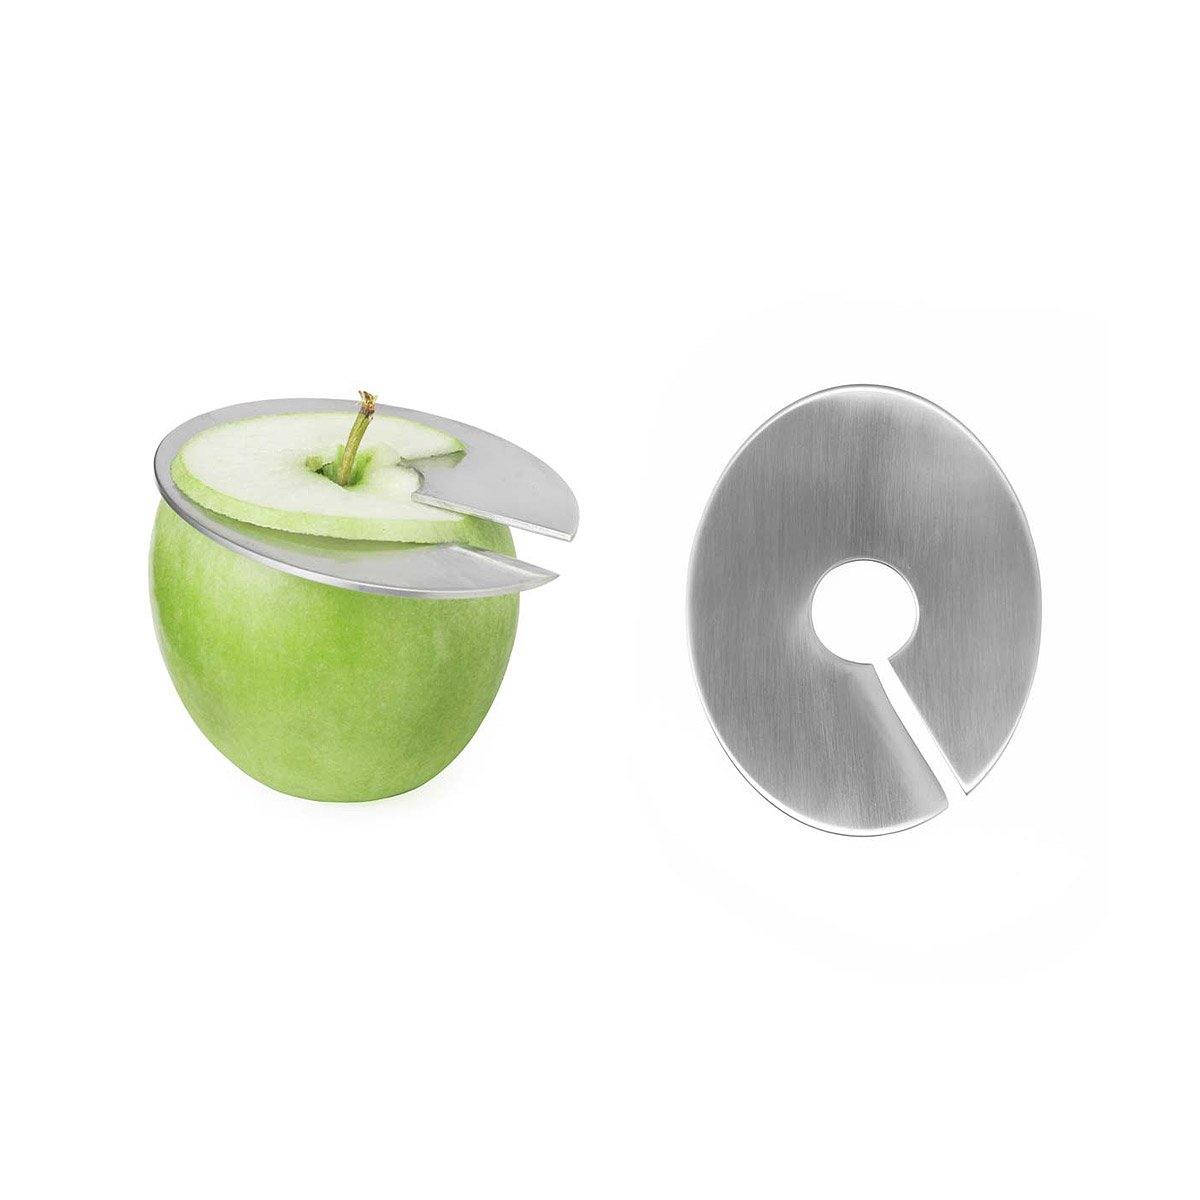 Apple Cores Are A Myth: Apples, Spirals, Kitchen, Slicers